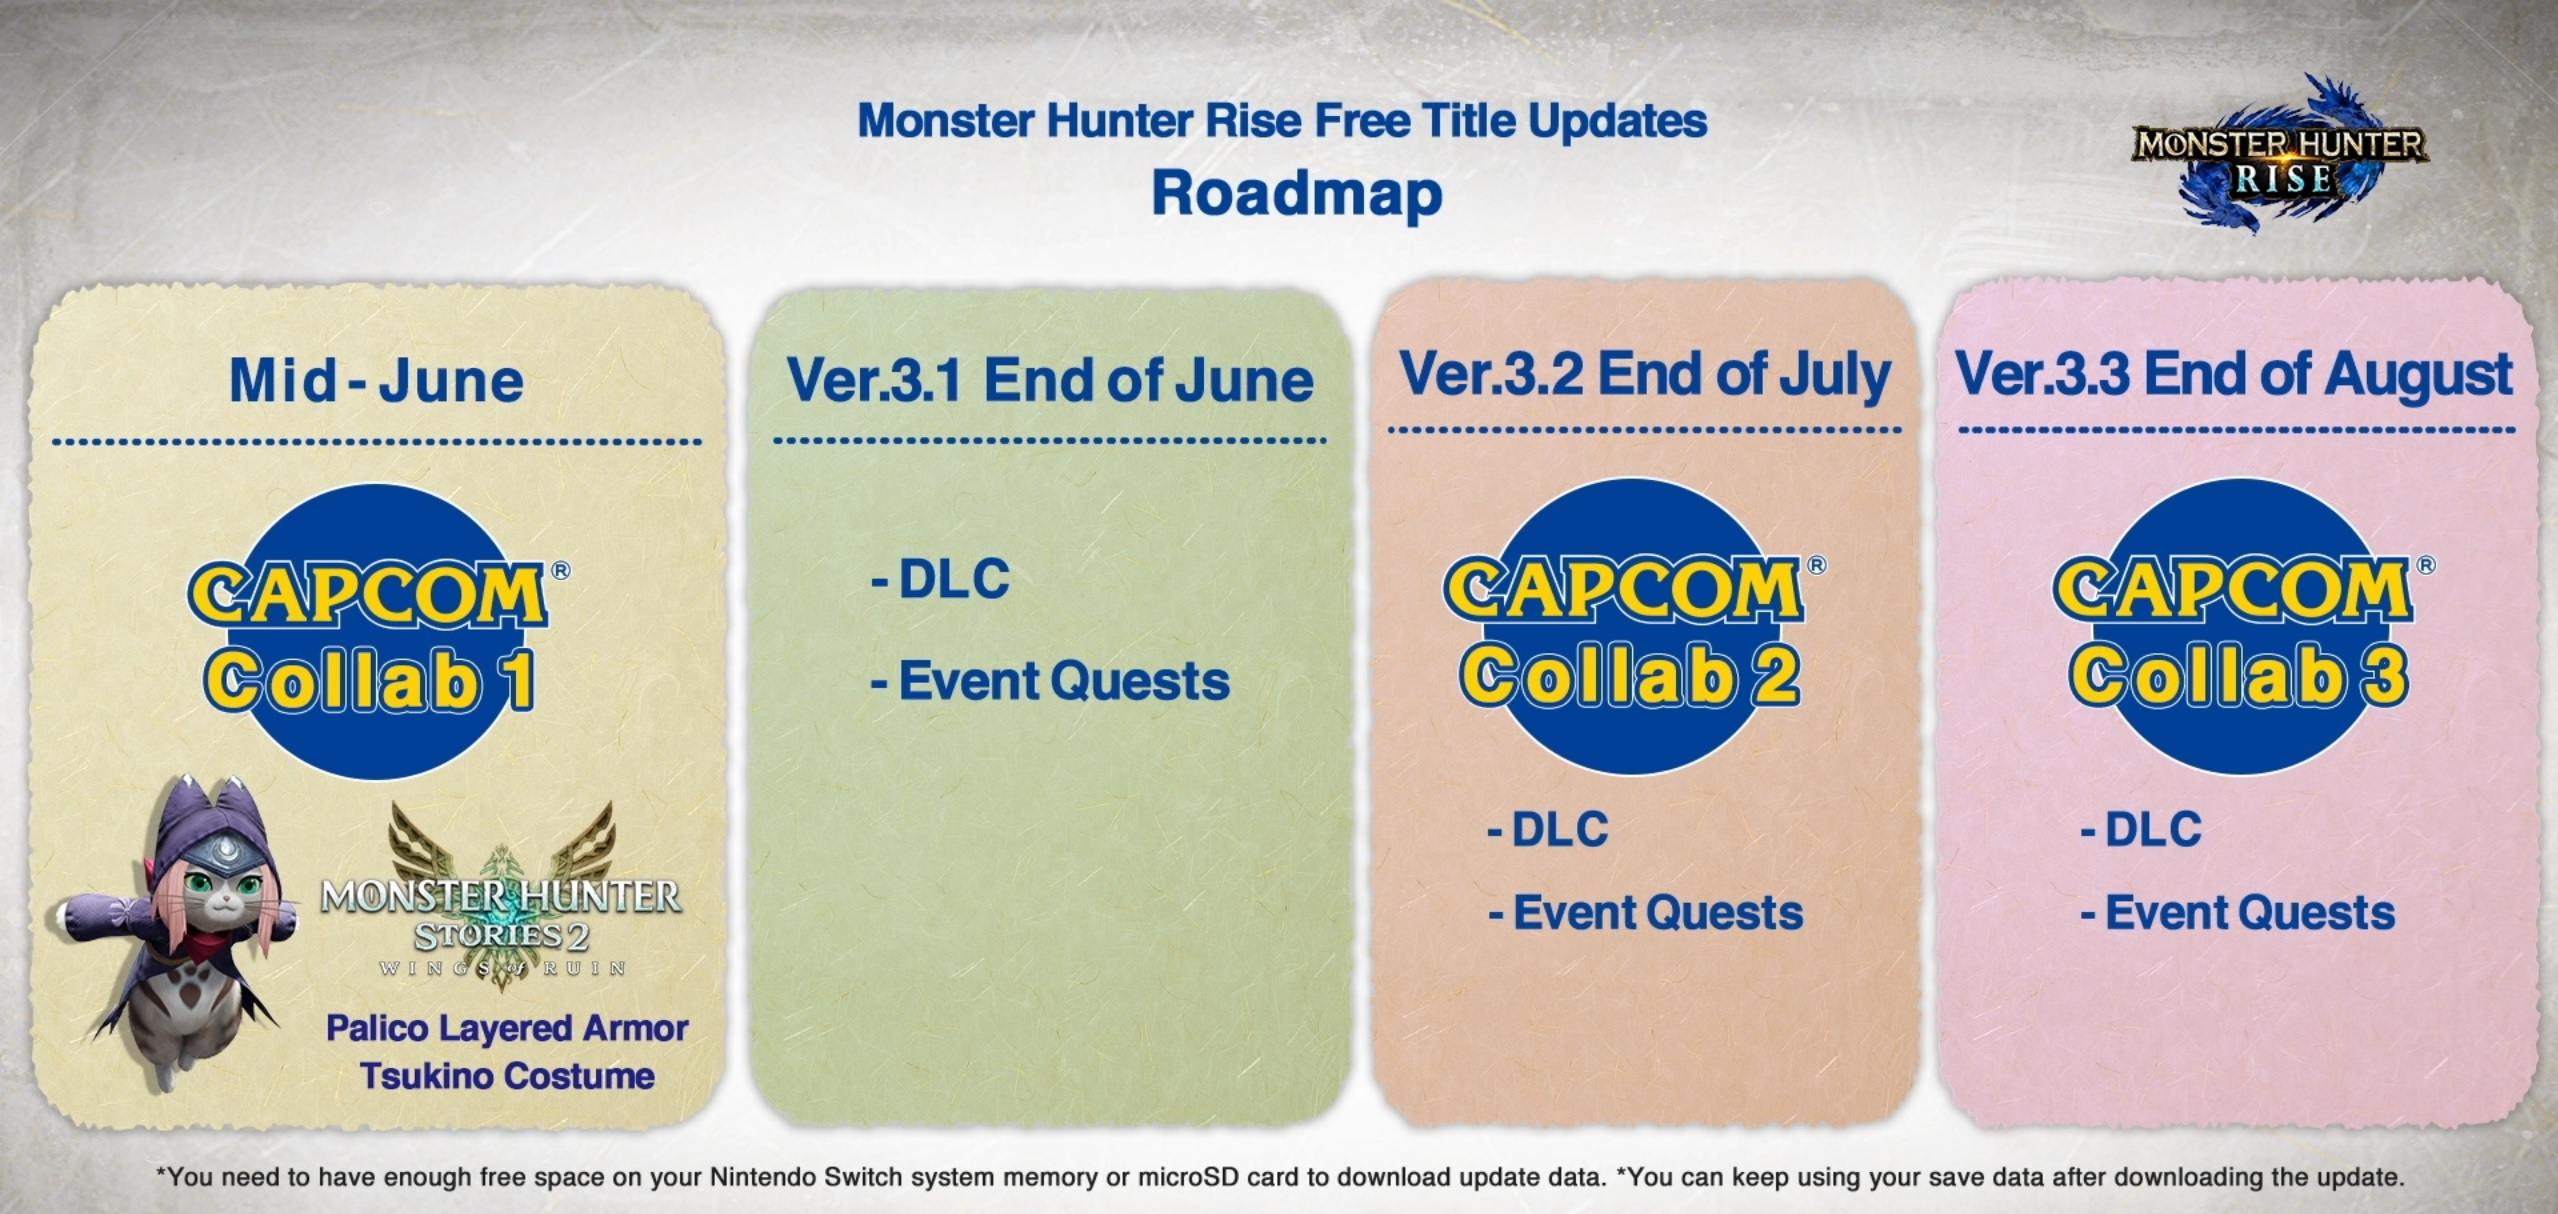 Capcom's Monster Hunter Rise roadmap includes teases for Ver. 3.1, but also 3.2 and 3.3 throughout this coming summer.